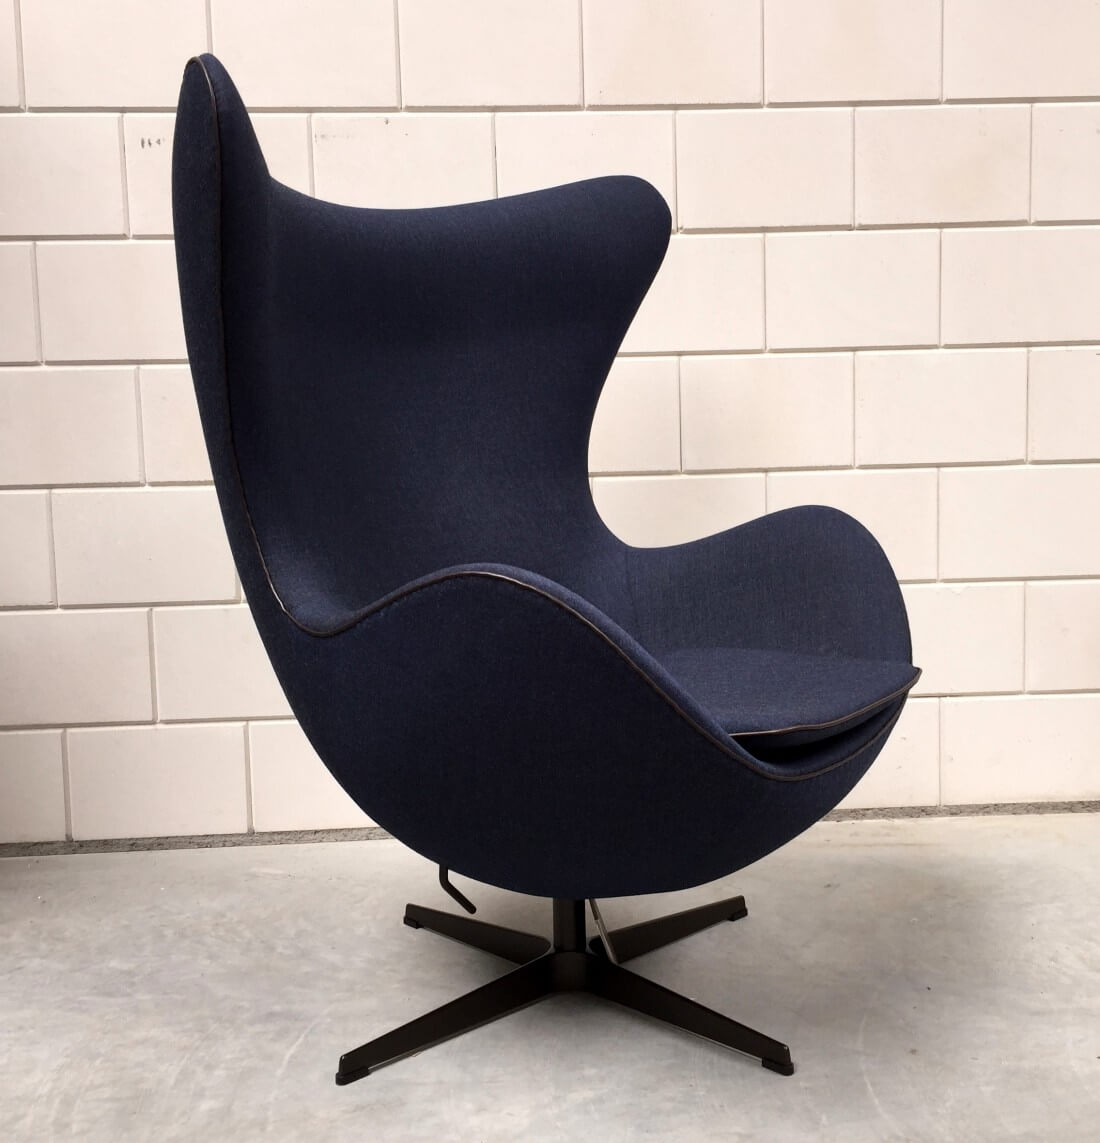 egg chair fritz hansen 39 s choice 2014 limited edition furn 14. Black Bedroom Furniture Sets. Home Design Ideas